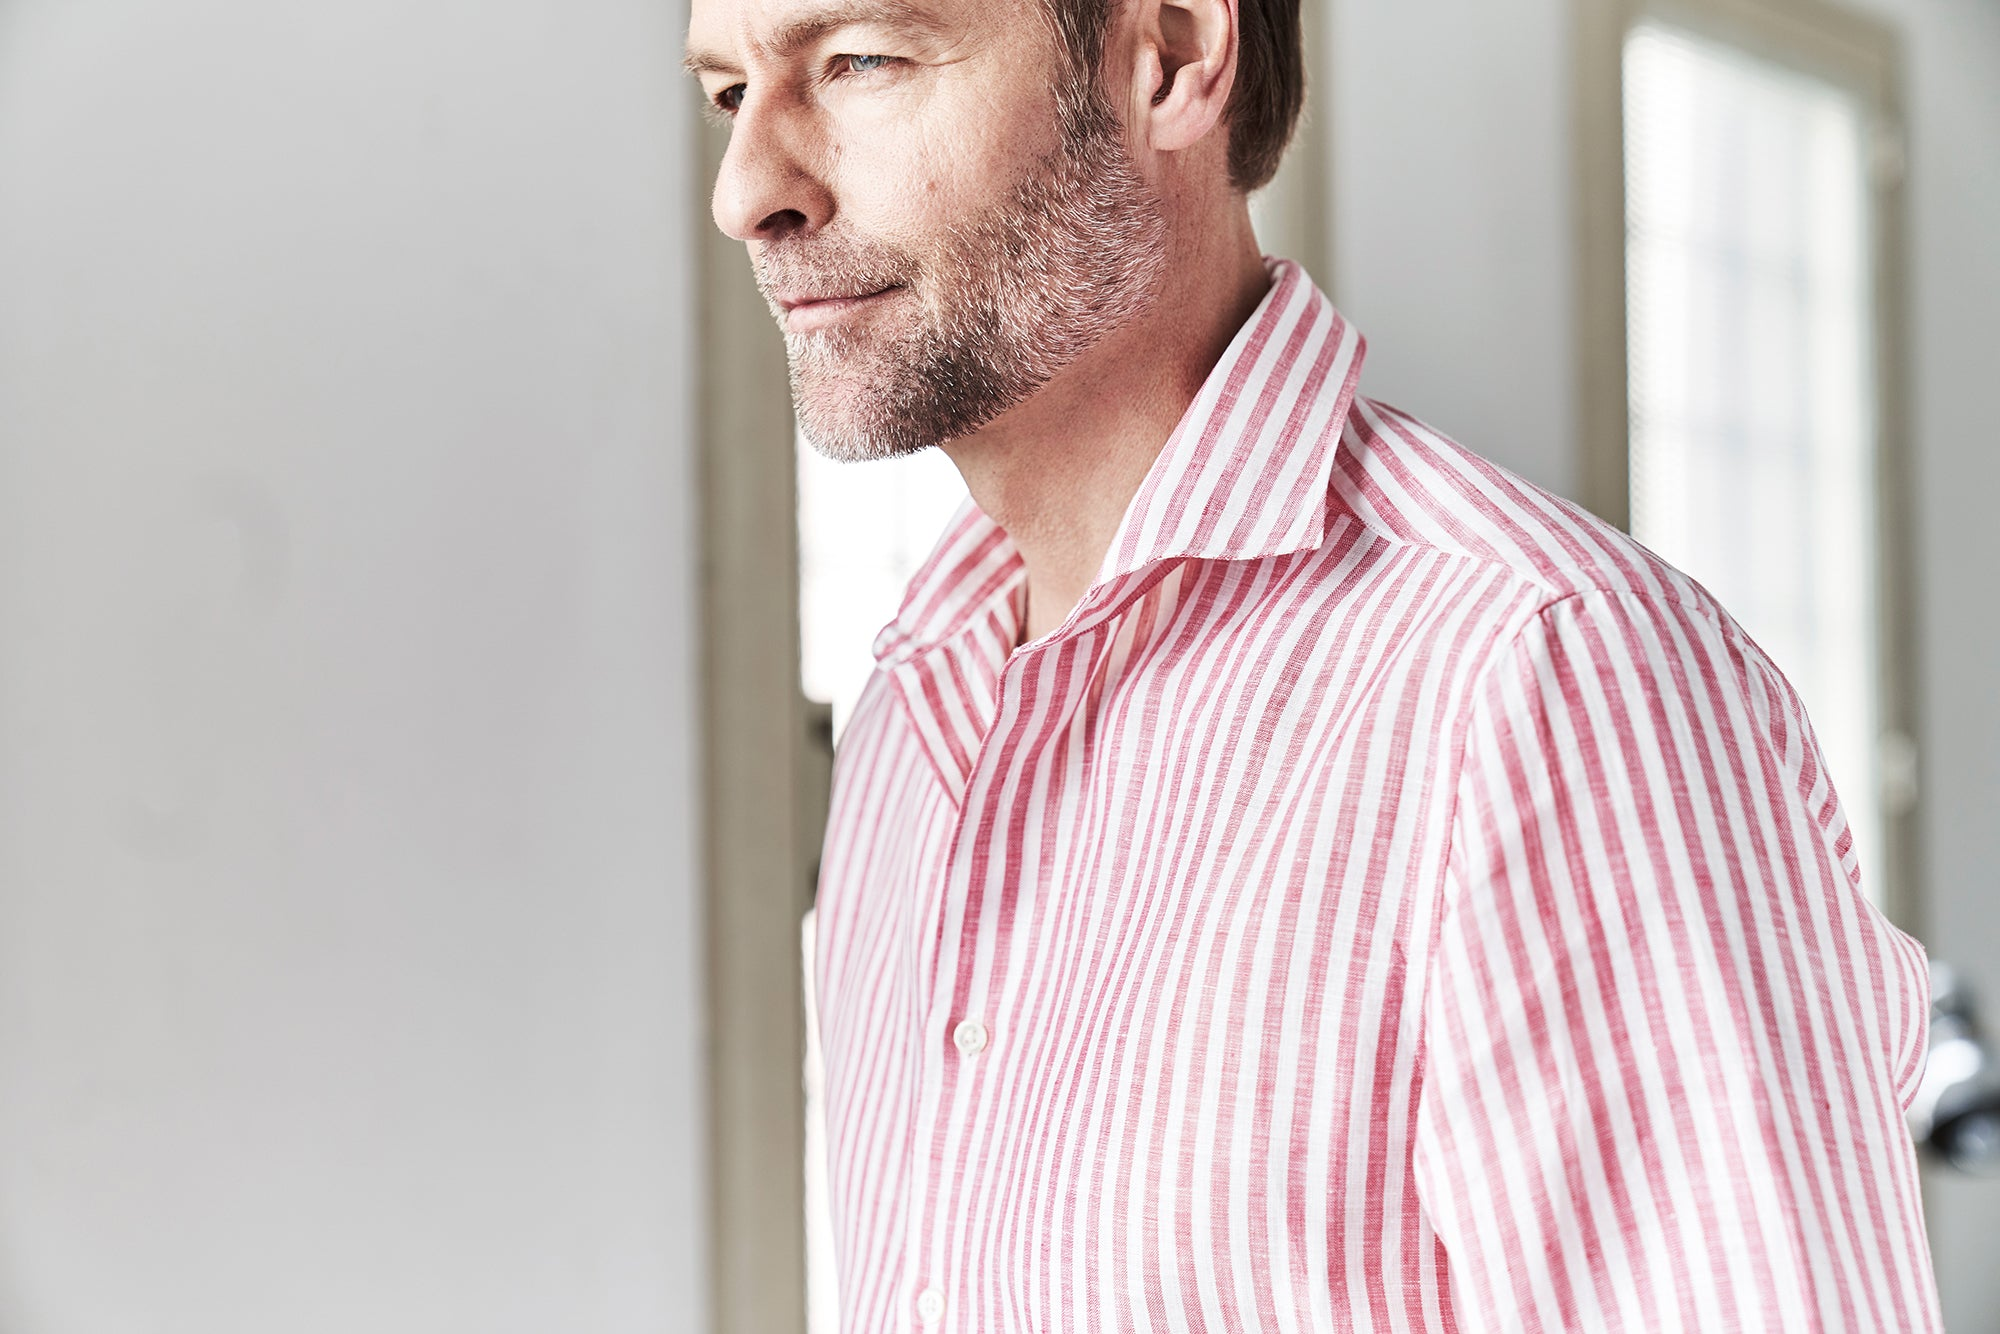 Profile of a man wearing a red and white linen shirt